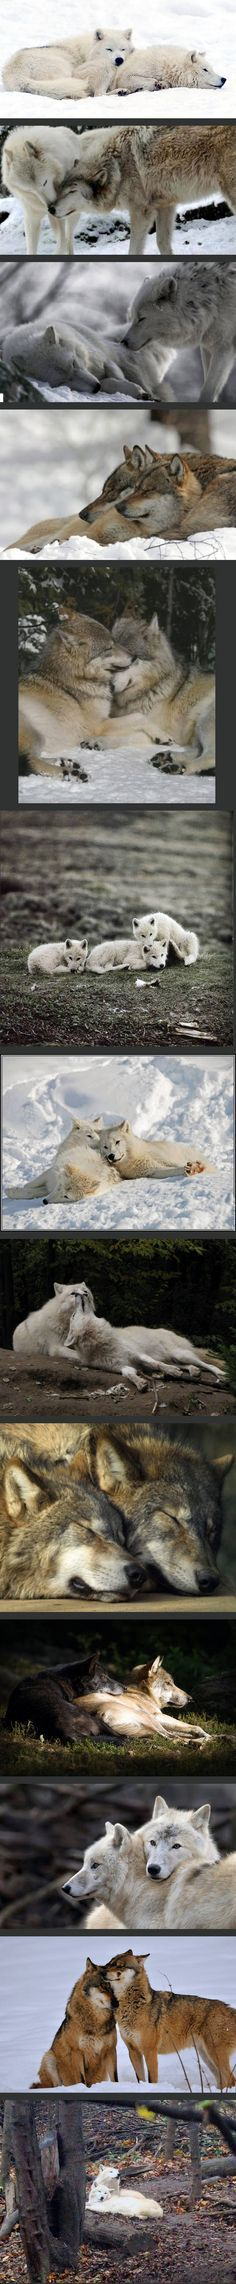 This entry was posted in Siberia and tagged siberia nature pictures, siberia pictures, siberia pinterest on July 3, 2016 - See more at: http://www.sienceandnature-pepi.stfi.re/siberia/they-are-truly-beautiful-and-so-loving-to-each-other/?sf=apprkkp#ab - They are truly beautiful and so loving to each other.